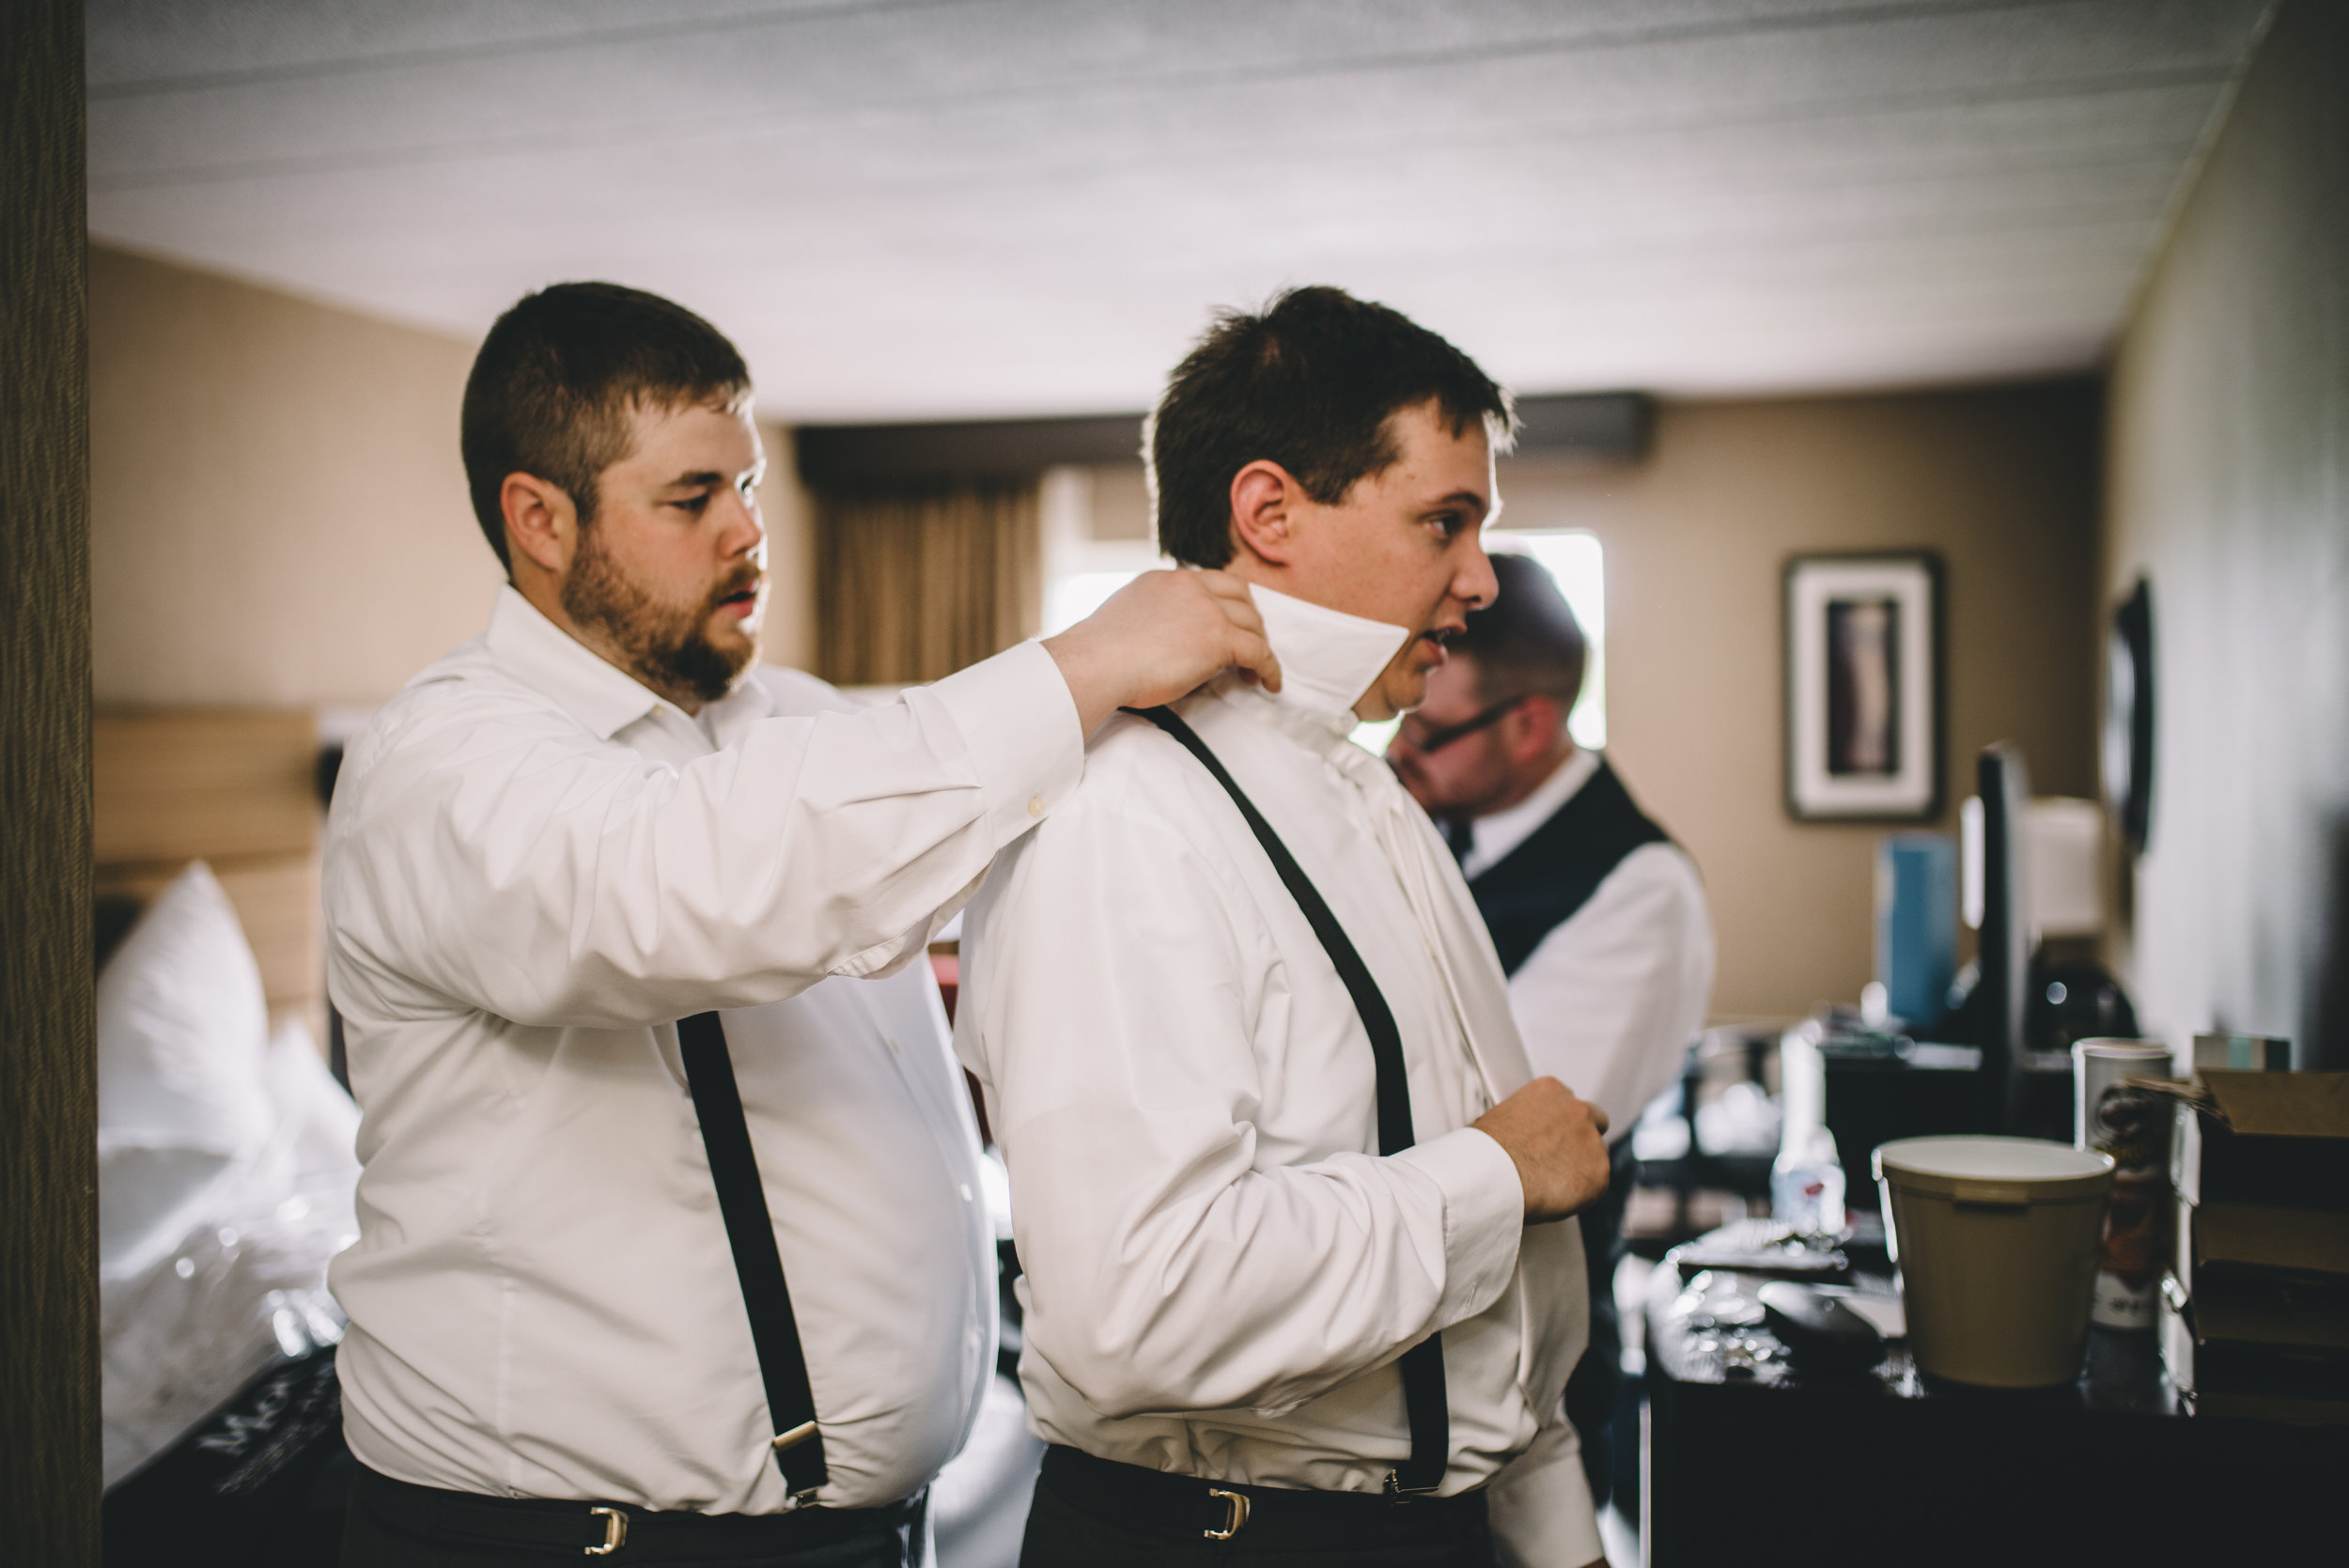 Groom Getting Ready 4 Mocha Tree Studios Ottawa Wedding and Engagement Photographer and Videographer Dark Moody Intimate Authentic Modern Romantic Cinematic Best Candid ALEX + BRIAN: THE MOUNT, PETERBOROUGH, ON